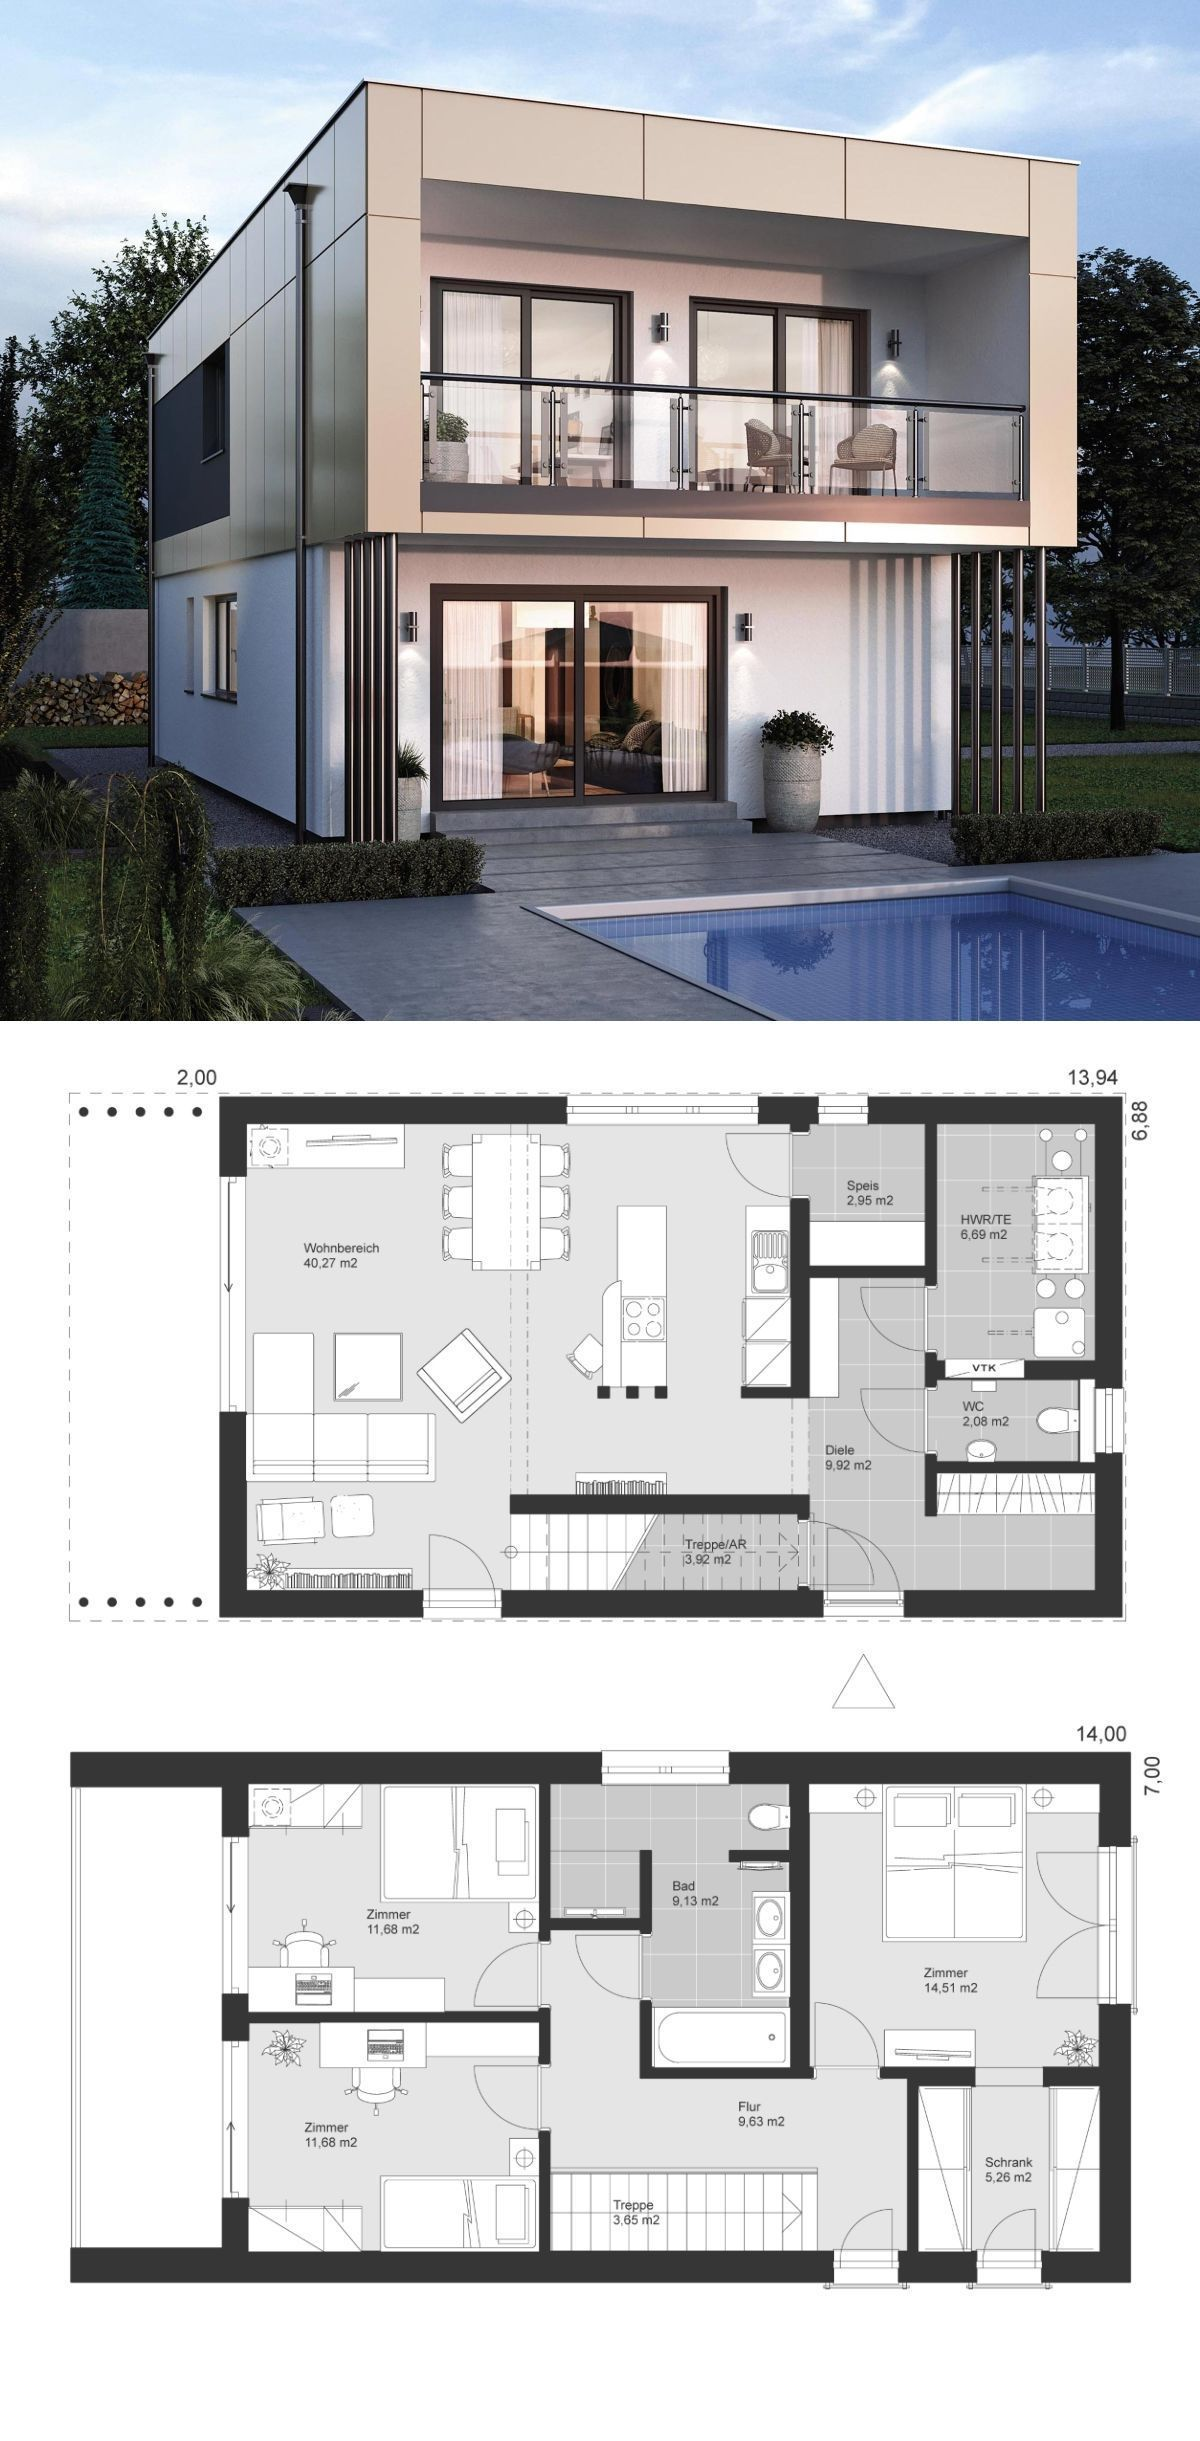 20 Best Of Minimalist House Designs [Simple, Unique, And Modern] | Planos De Casas Mediterráneas, Planos De Arquitectura, Diseño Casas Pequeñas